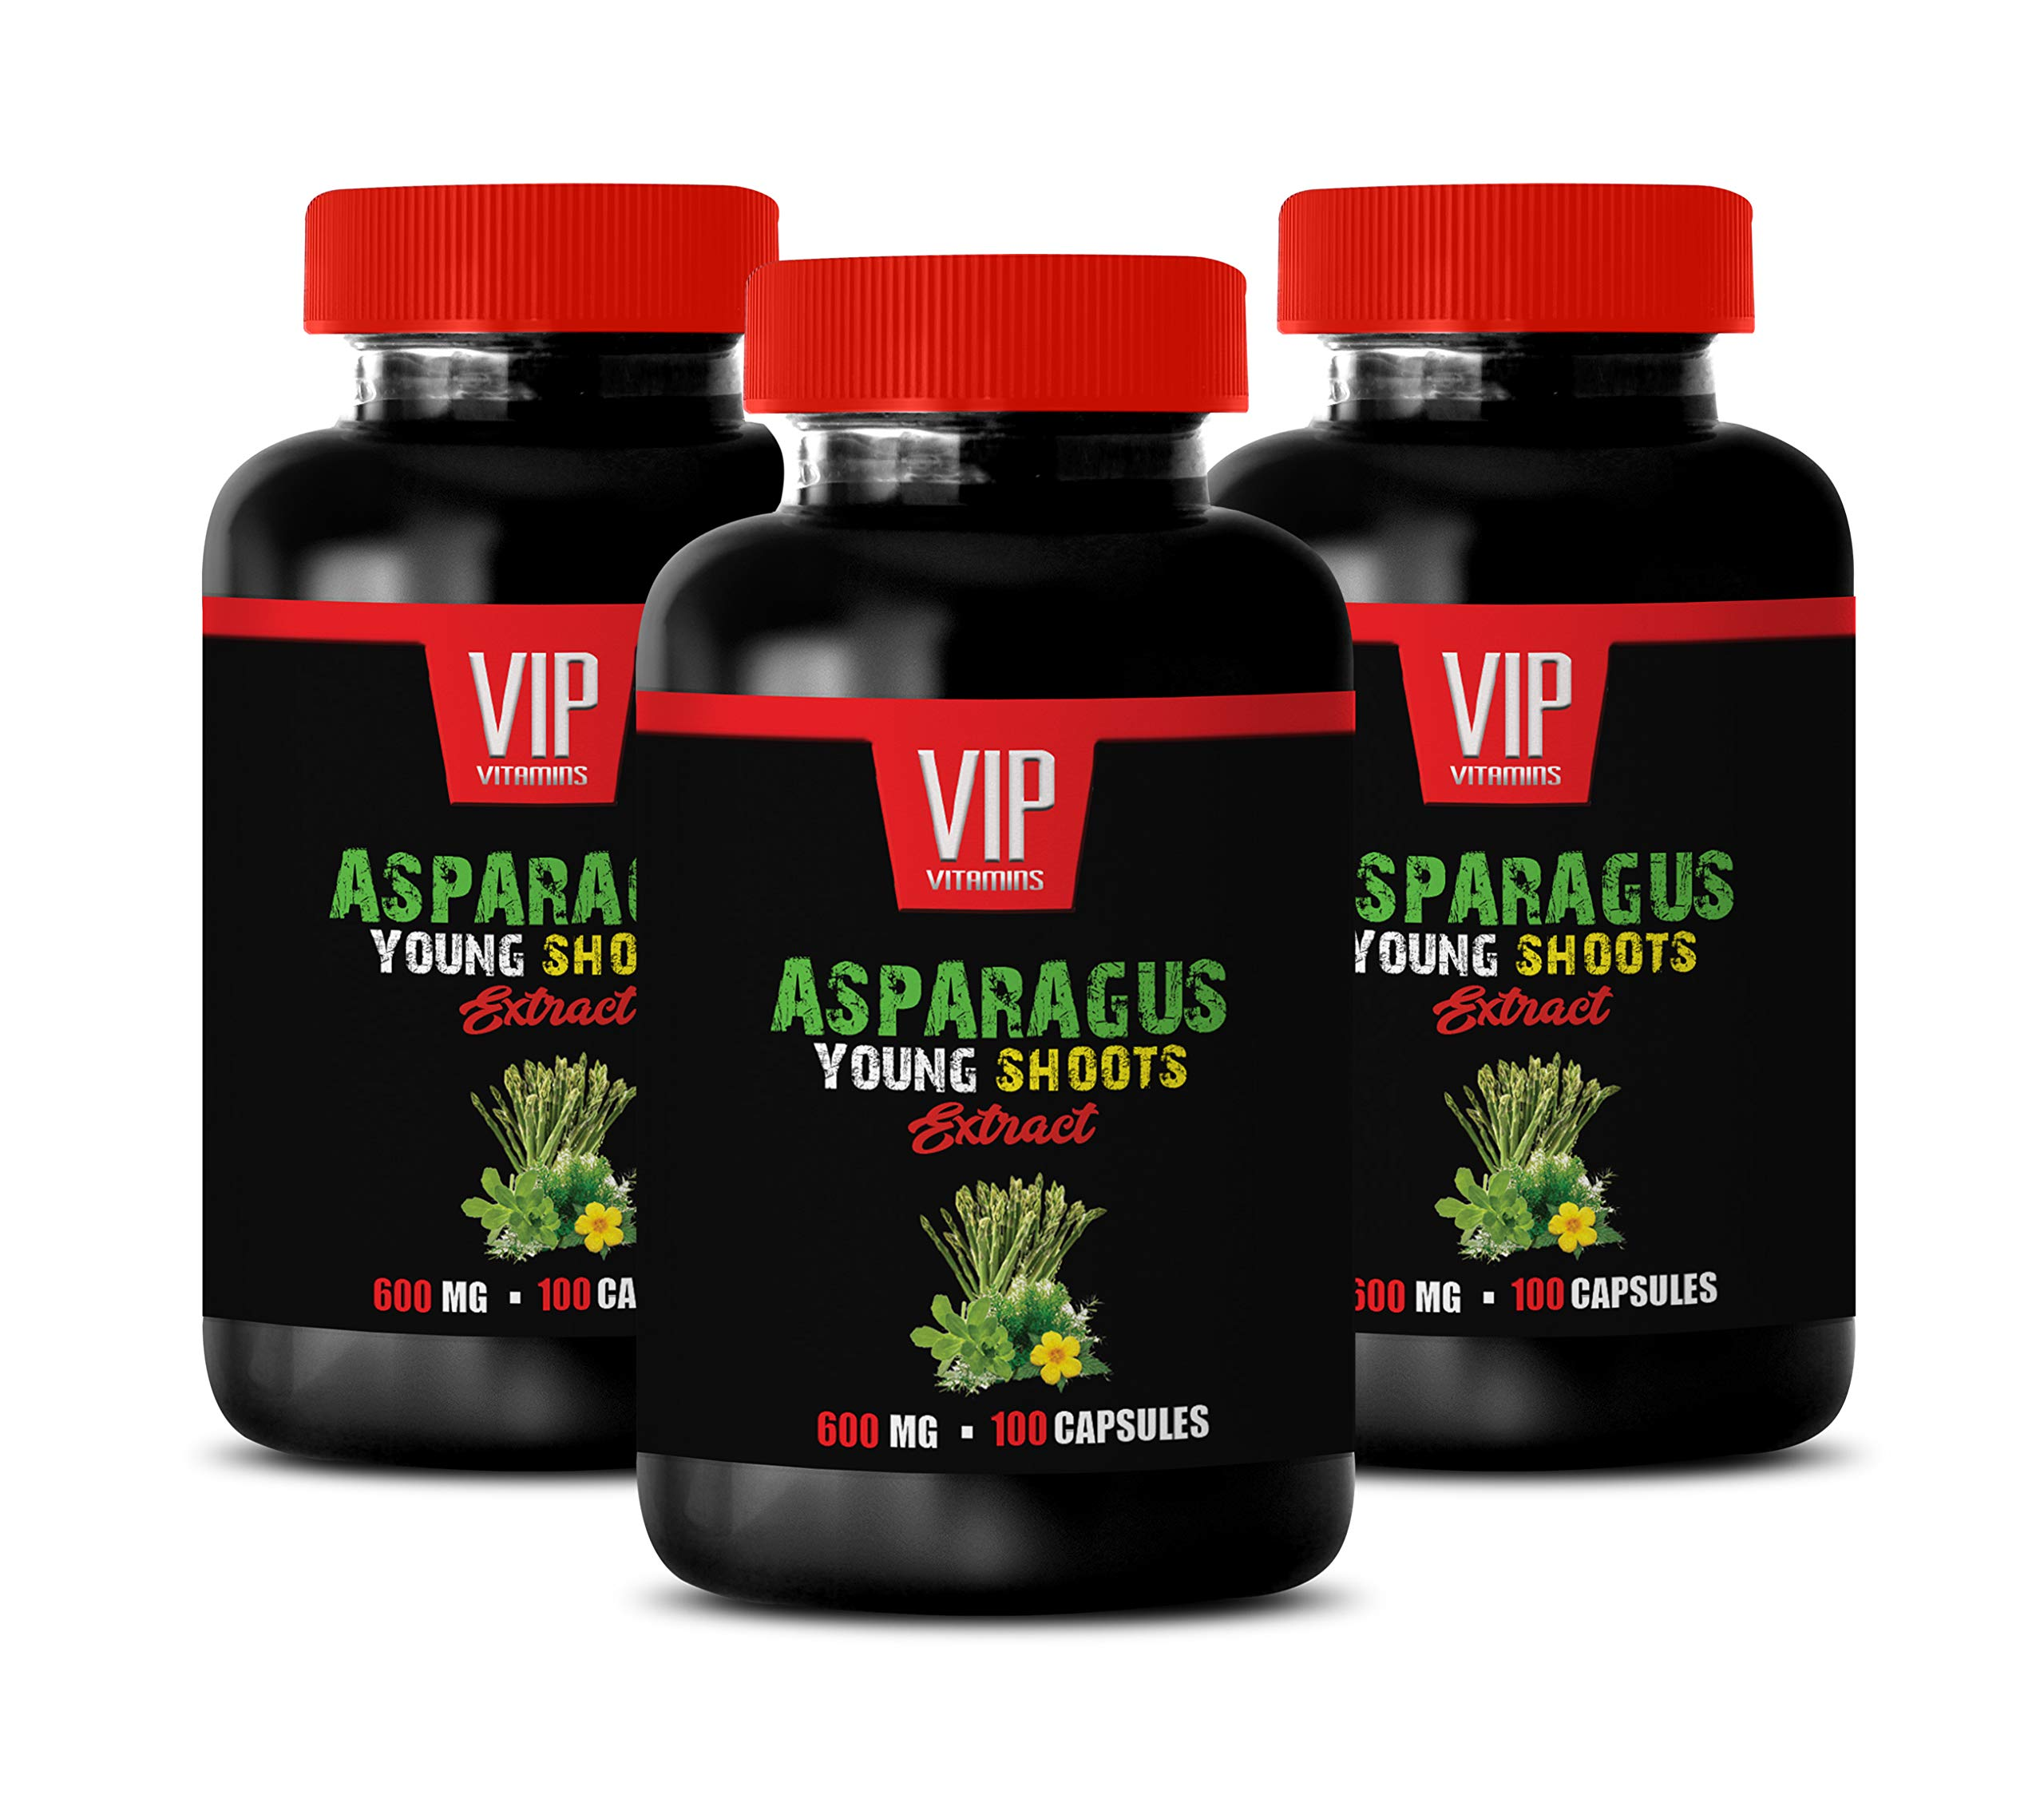 Brain and Memory Boost Pills - Asparagus Young Shoots Extract 600 MG - Natural Digestive wellnes - 3 Bottles 300 Capsules